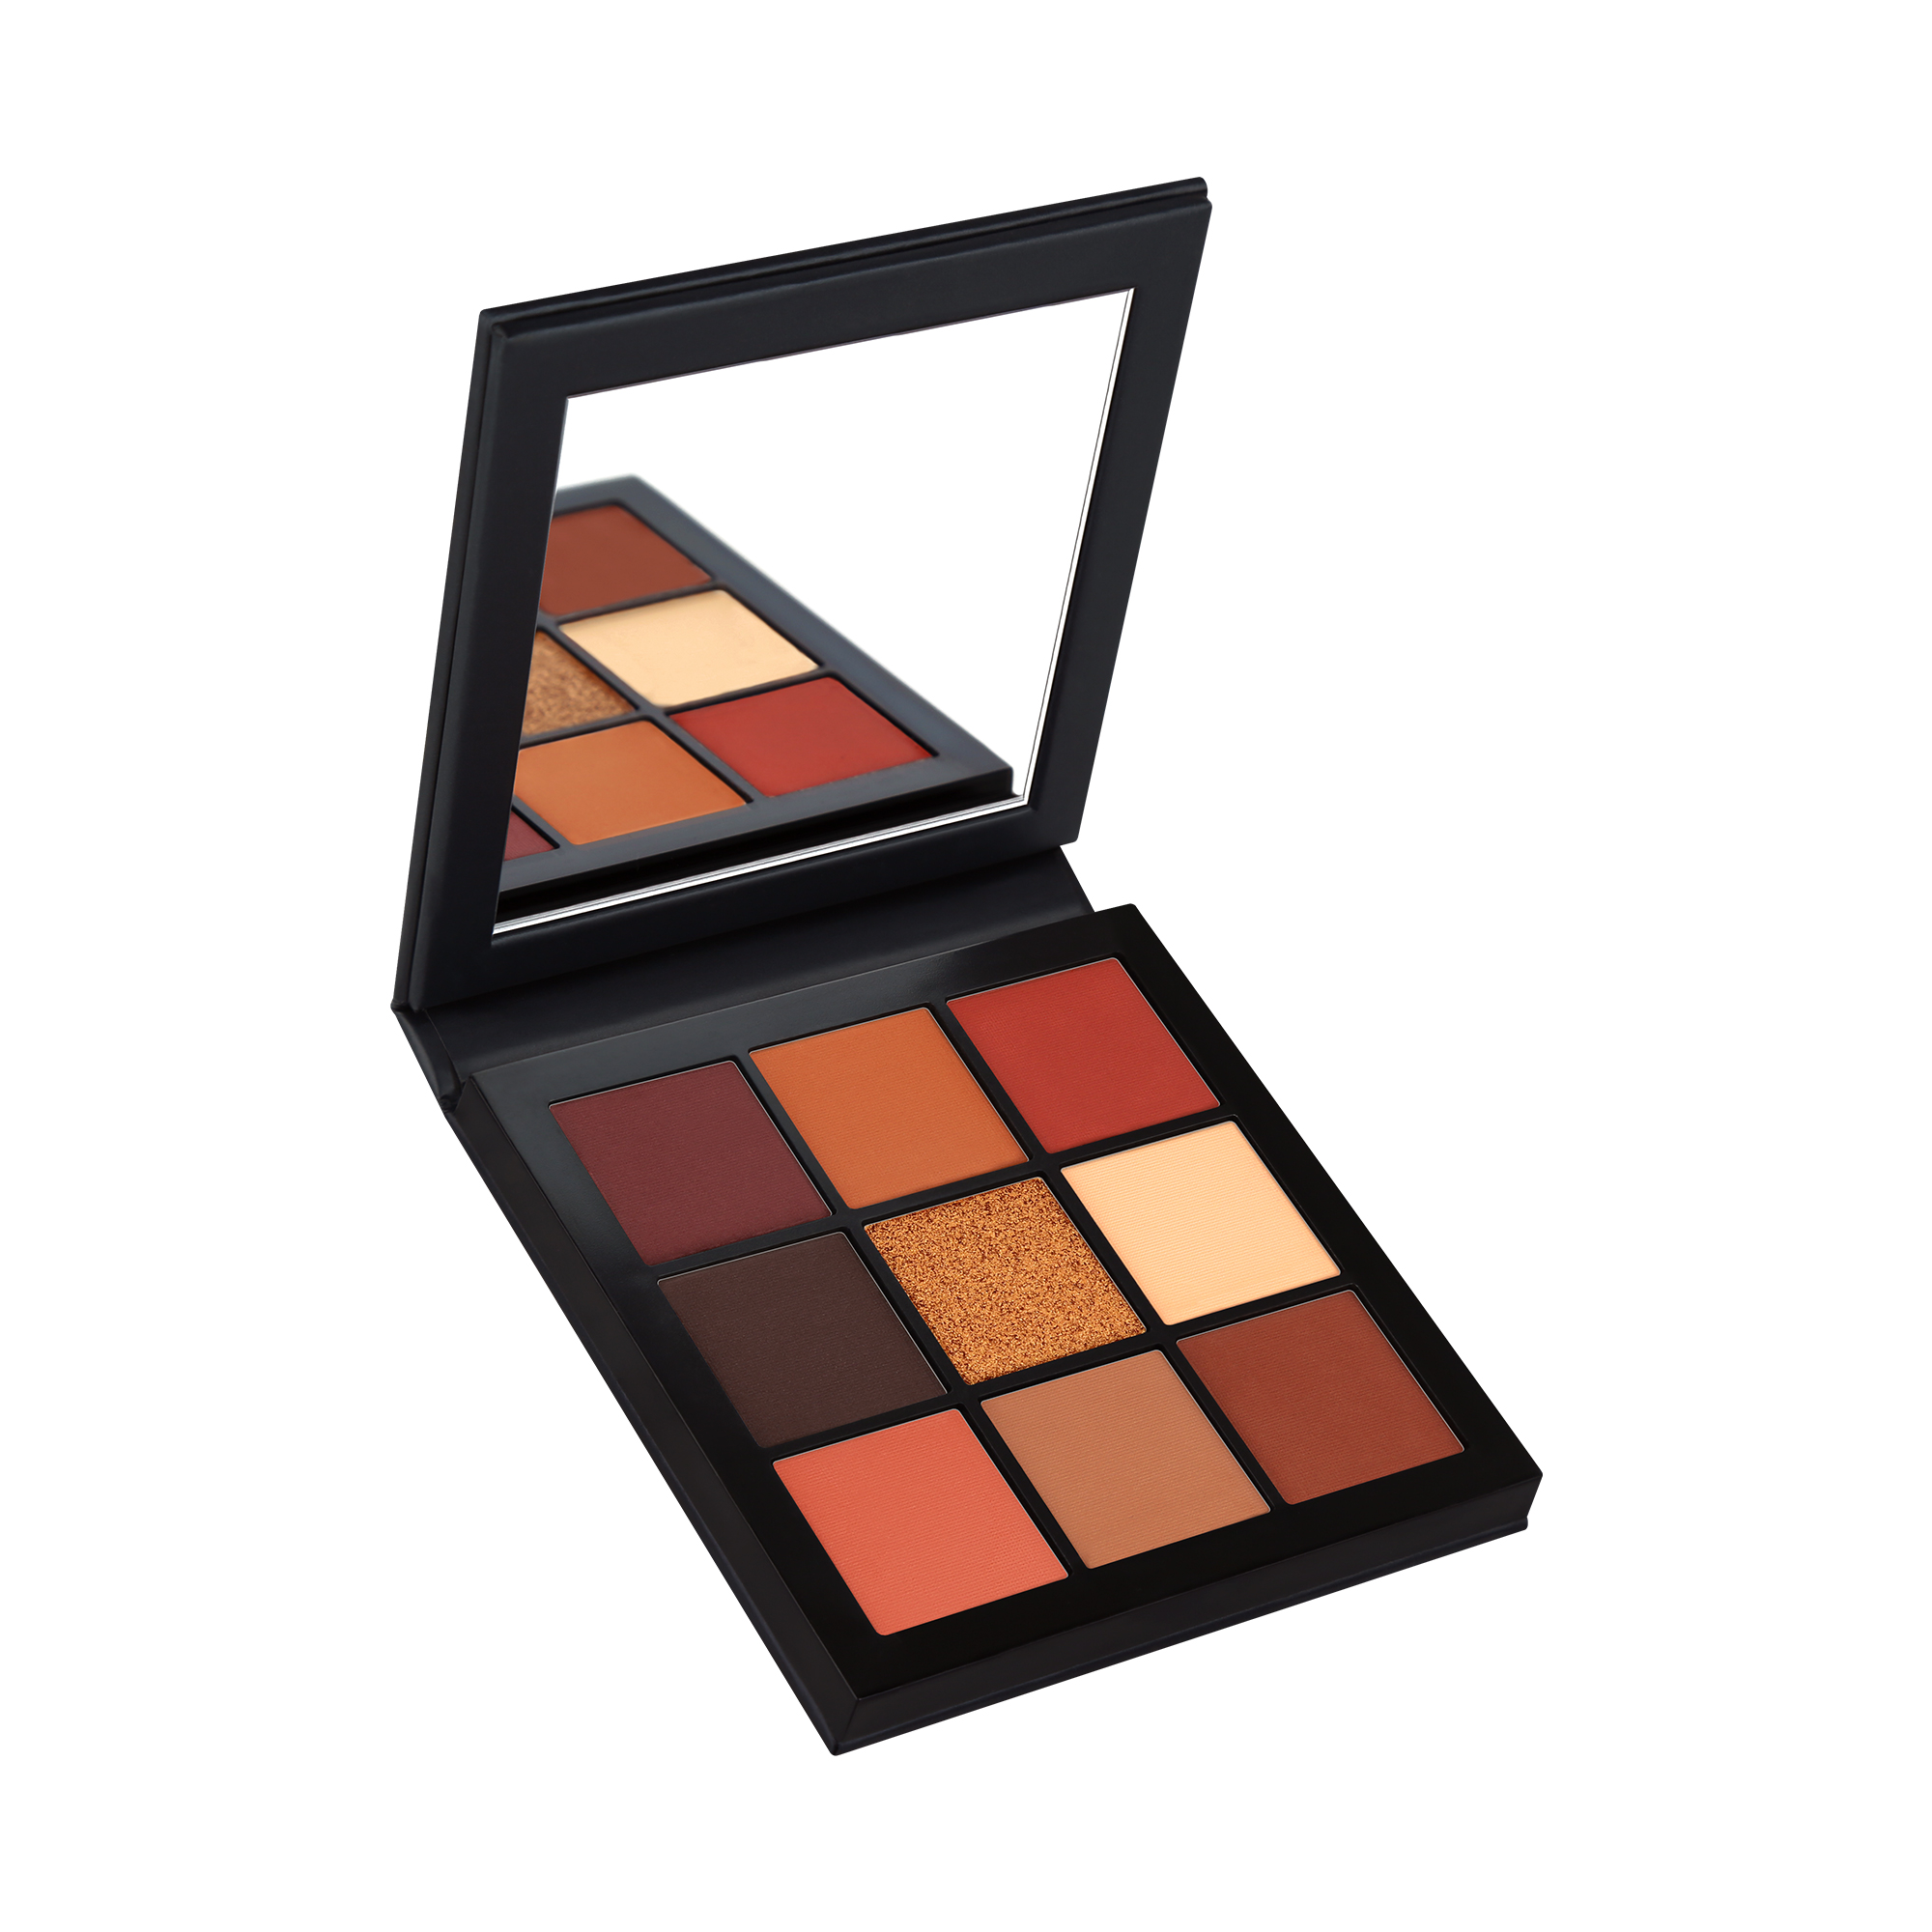 Huda Obsession Palette 27.00     http://www.shophudabeauty.com/product/obsessions-palette-warm-brown/?v=7516fd43adaa